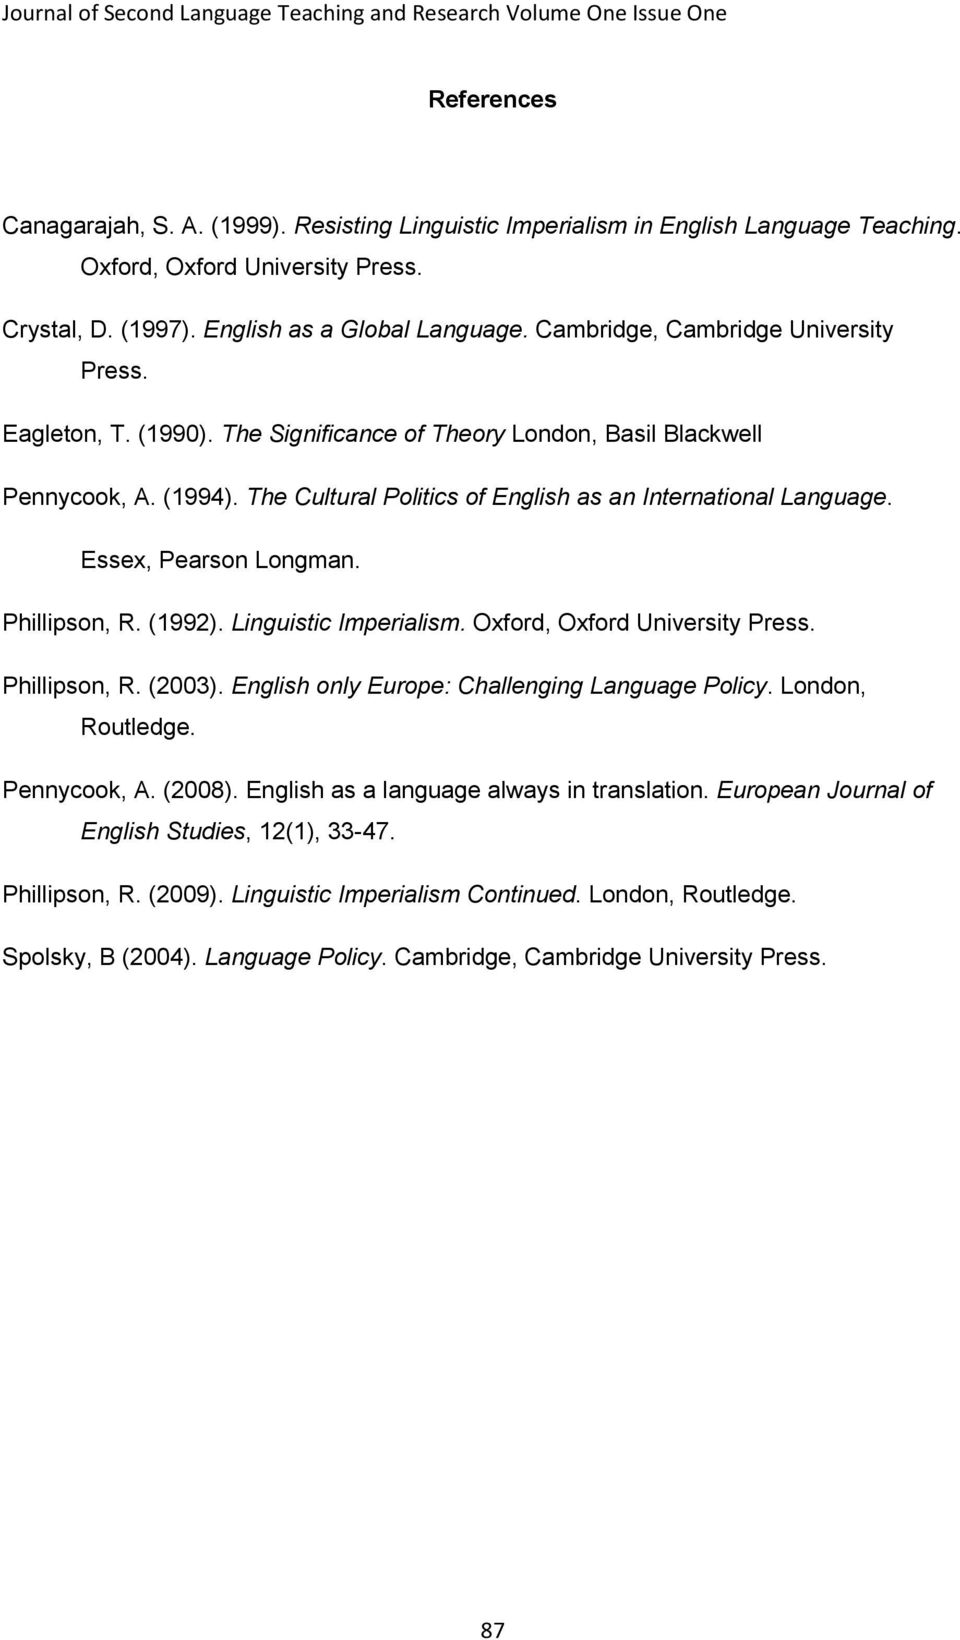 Essex, Pearson Longman. Phillipson, R. (1992). Linguistic Imperialism. Oxford, Oxford University Press. Phillipson, R. (2003). English only Europe: Challenging Language Policy. London, Routledge.